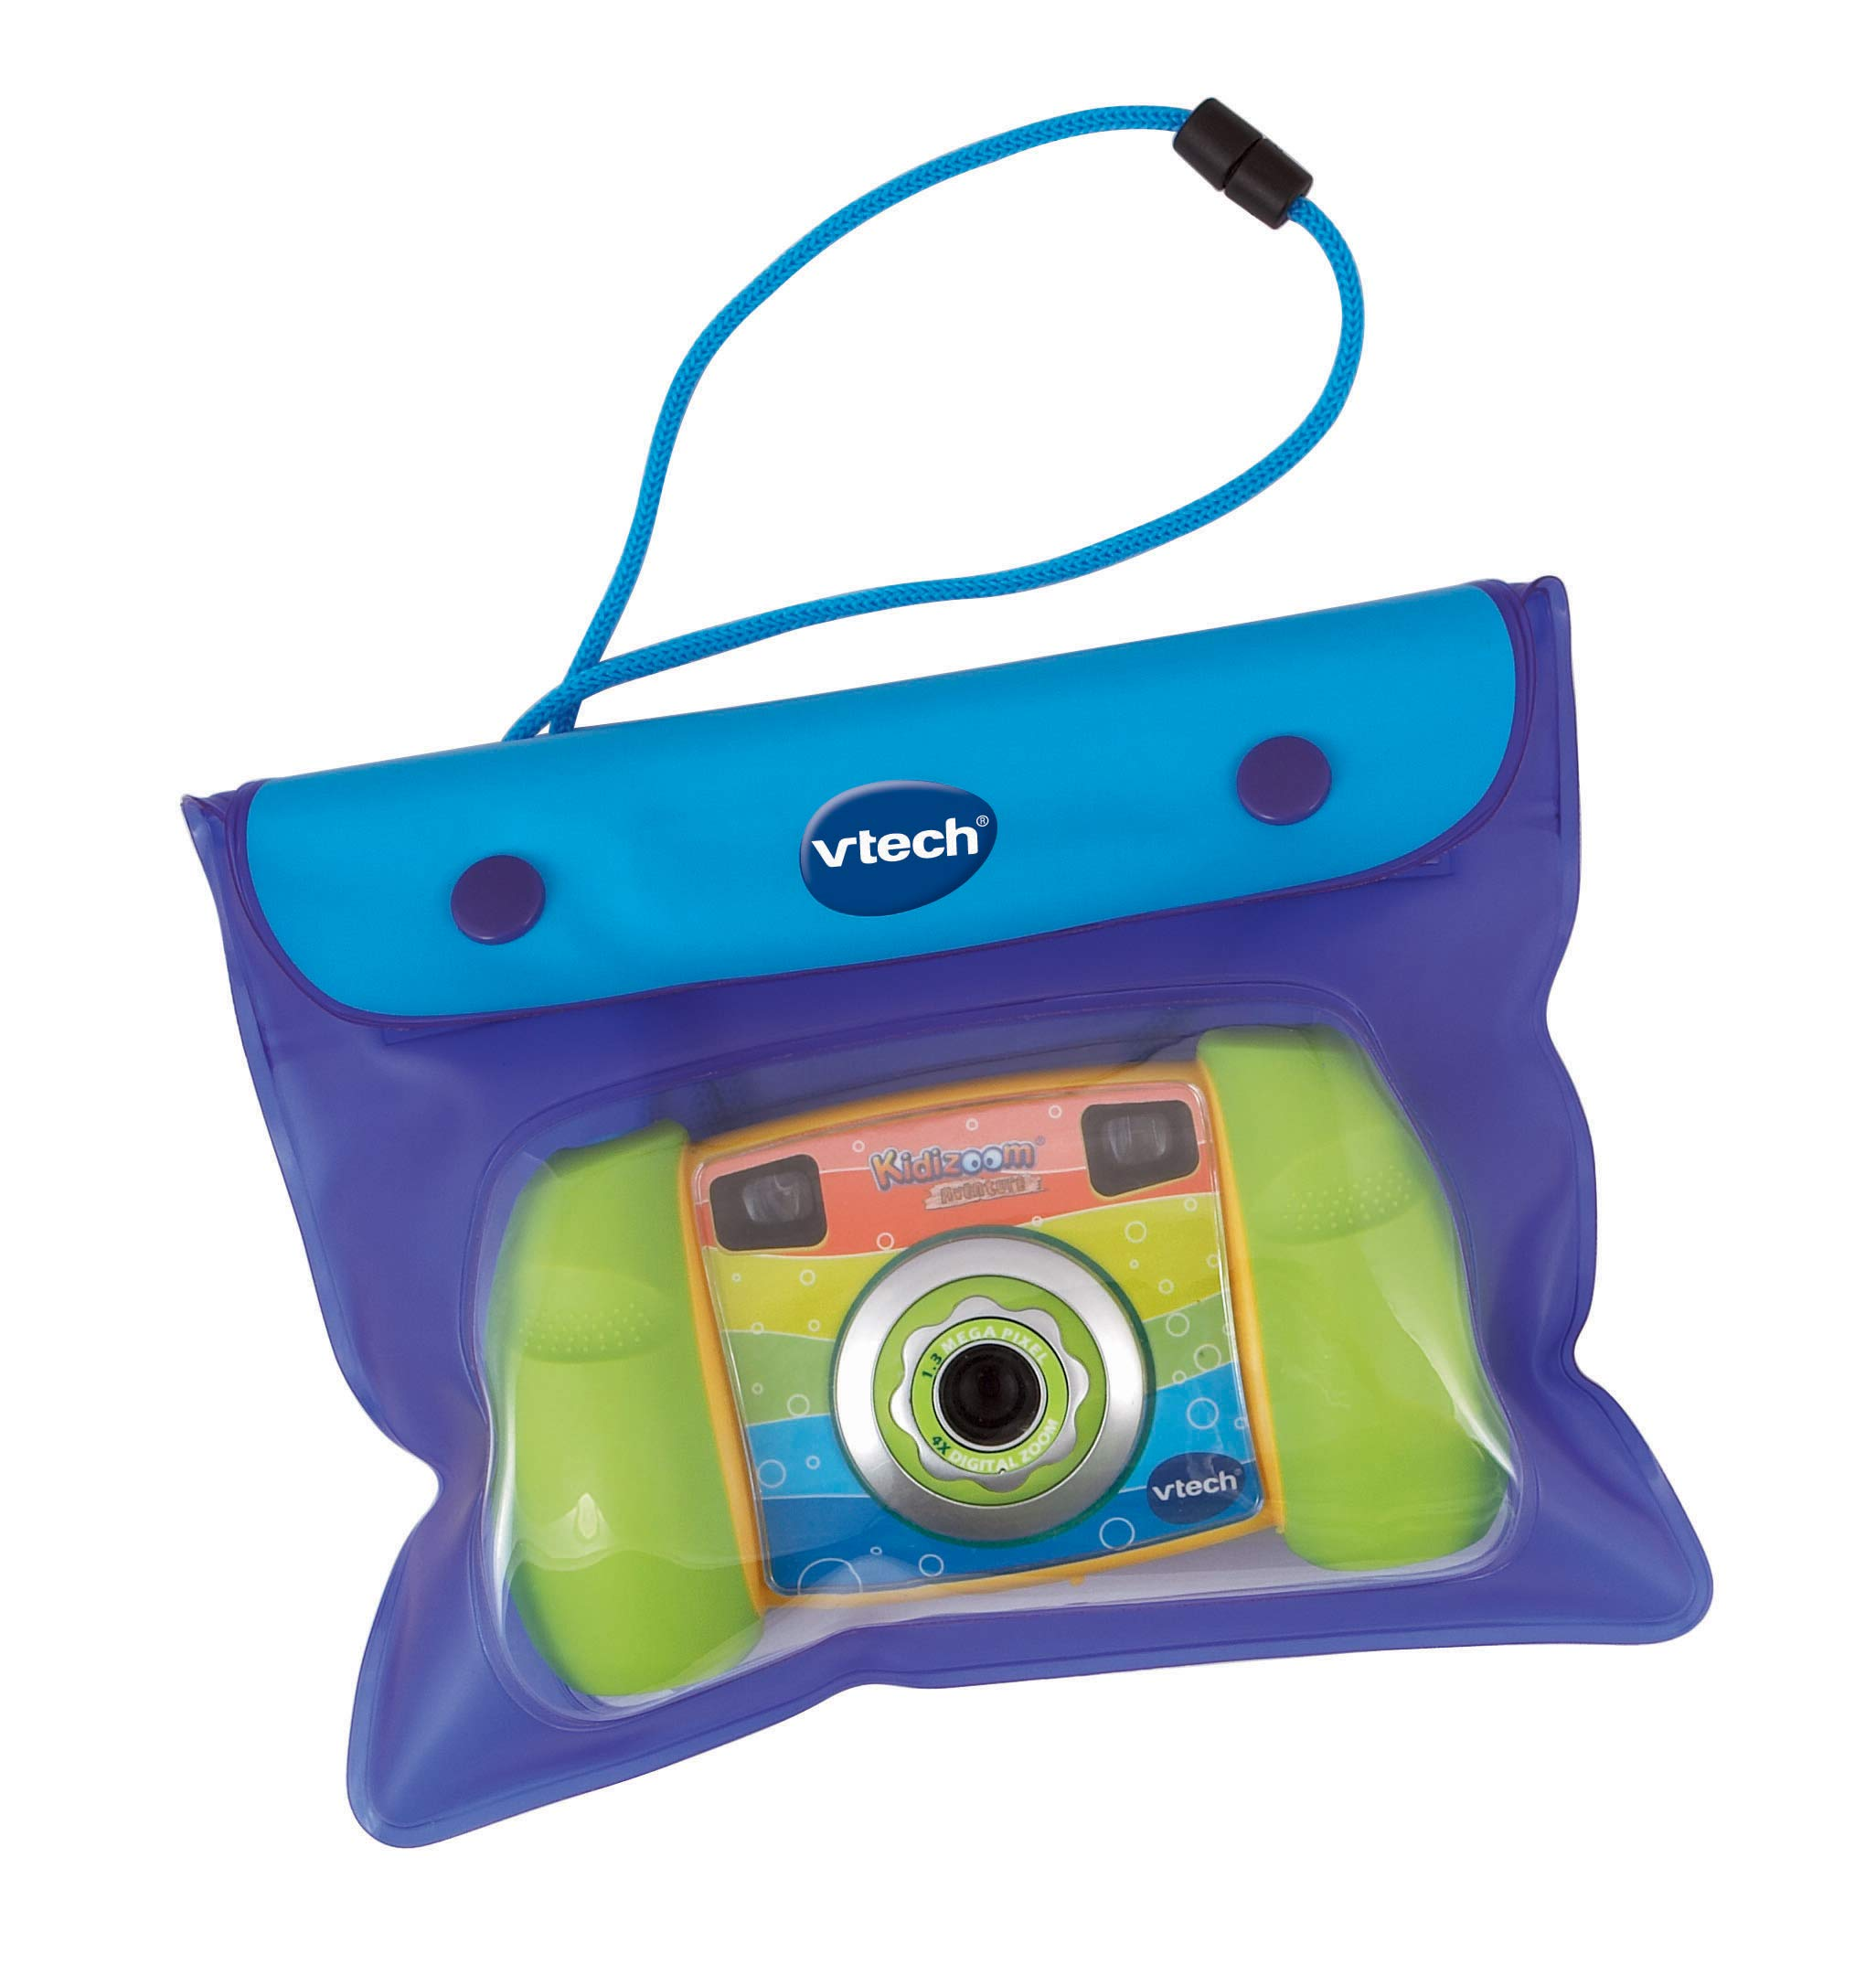 VTech Cooltronic-Waterproof Case Kidizoom 80-204805 by VTech (Image #2)